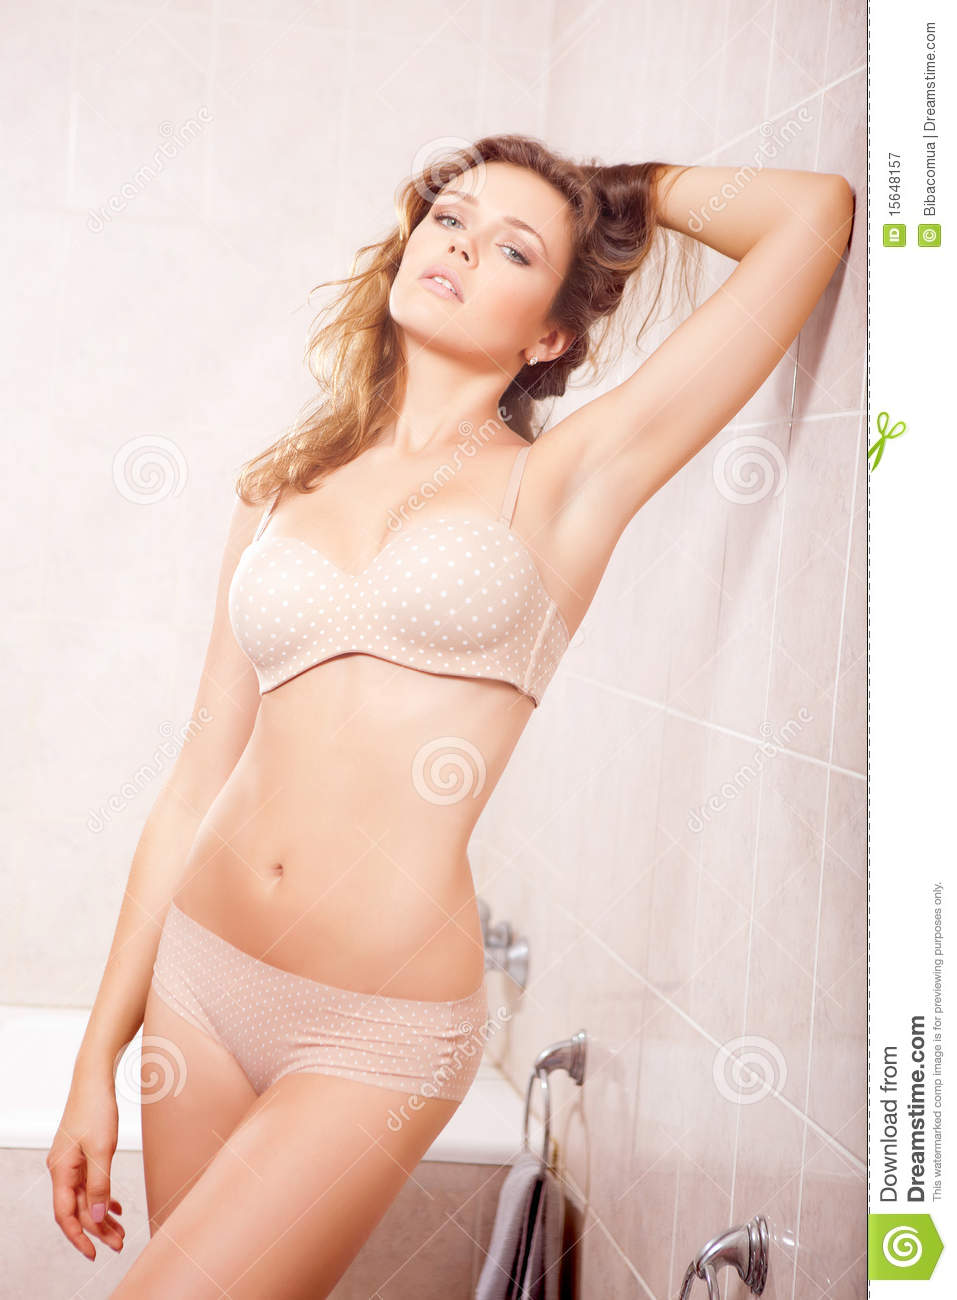 Sexy Woman In Bathroom Royalty Free Stock Photography